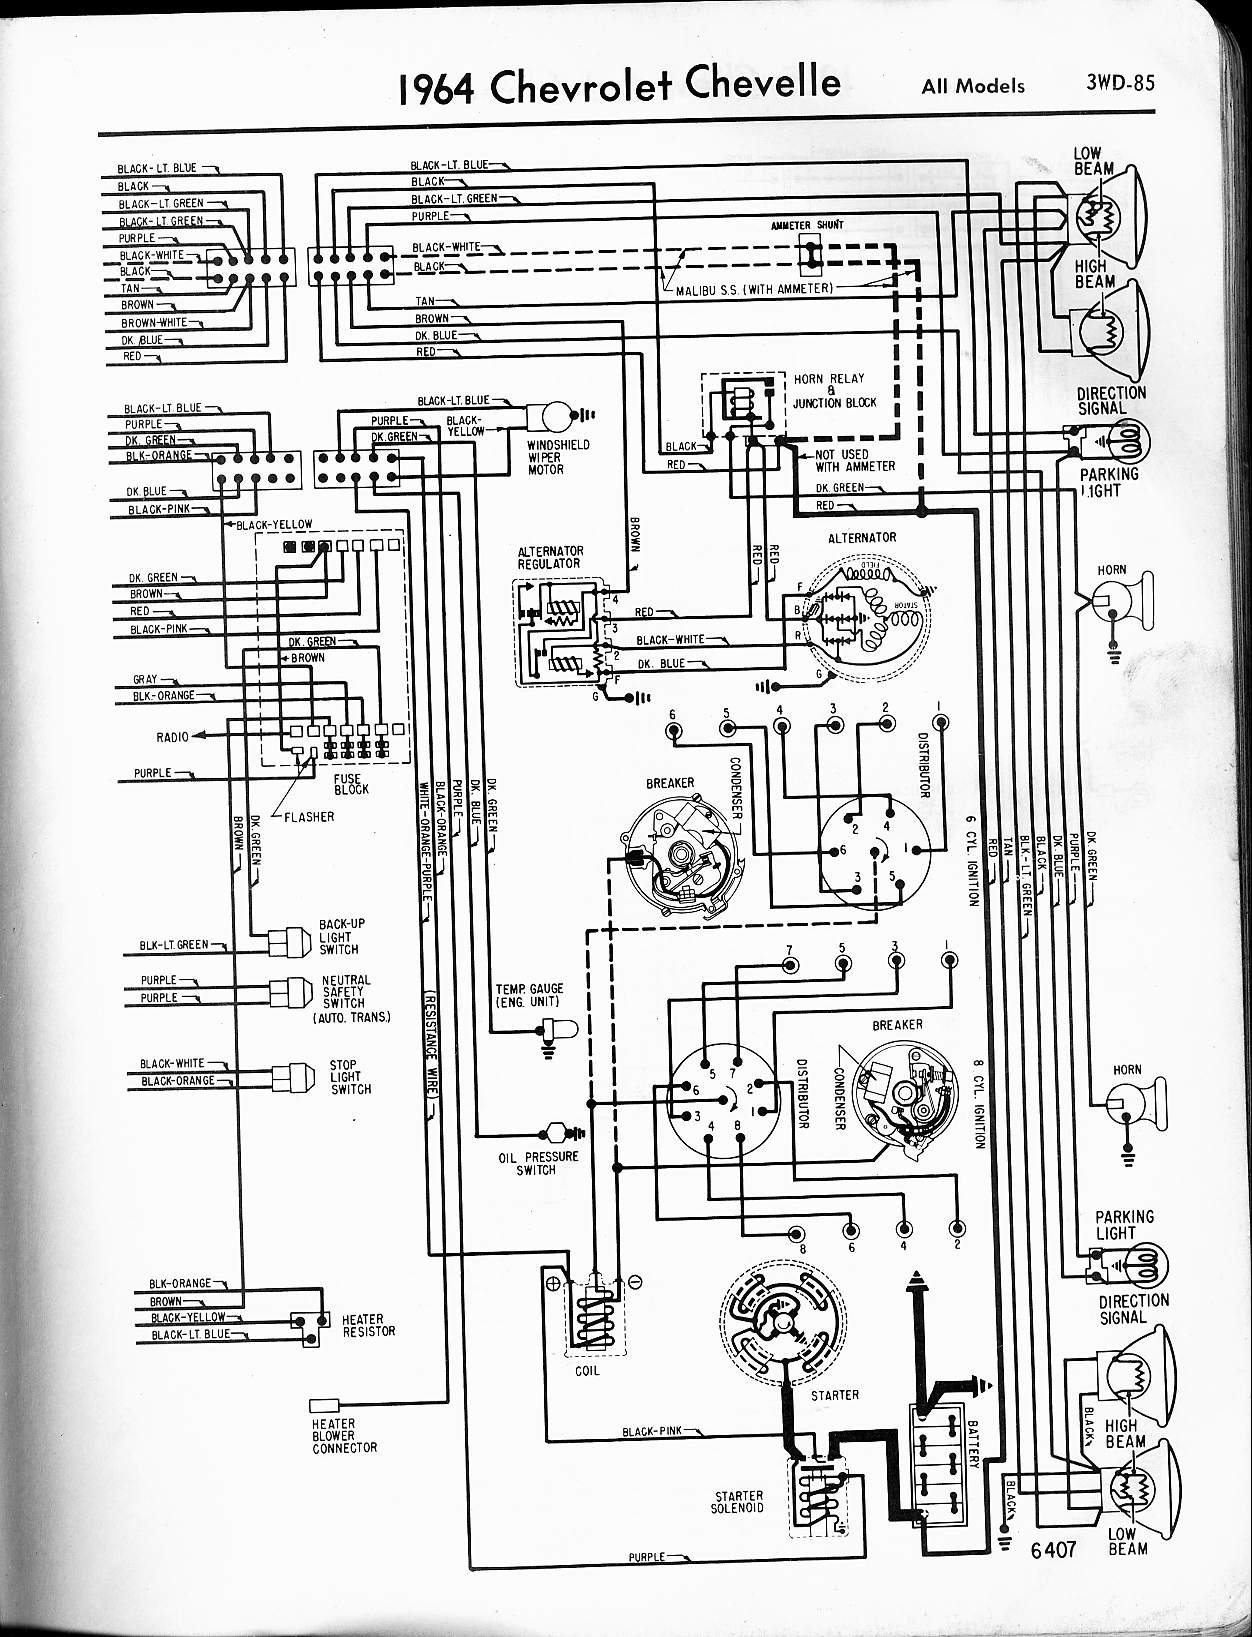 1965 Impala Wiring Light Switch - Trusted Wiring Diagram •